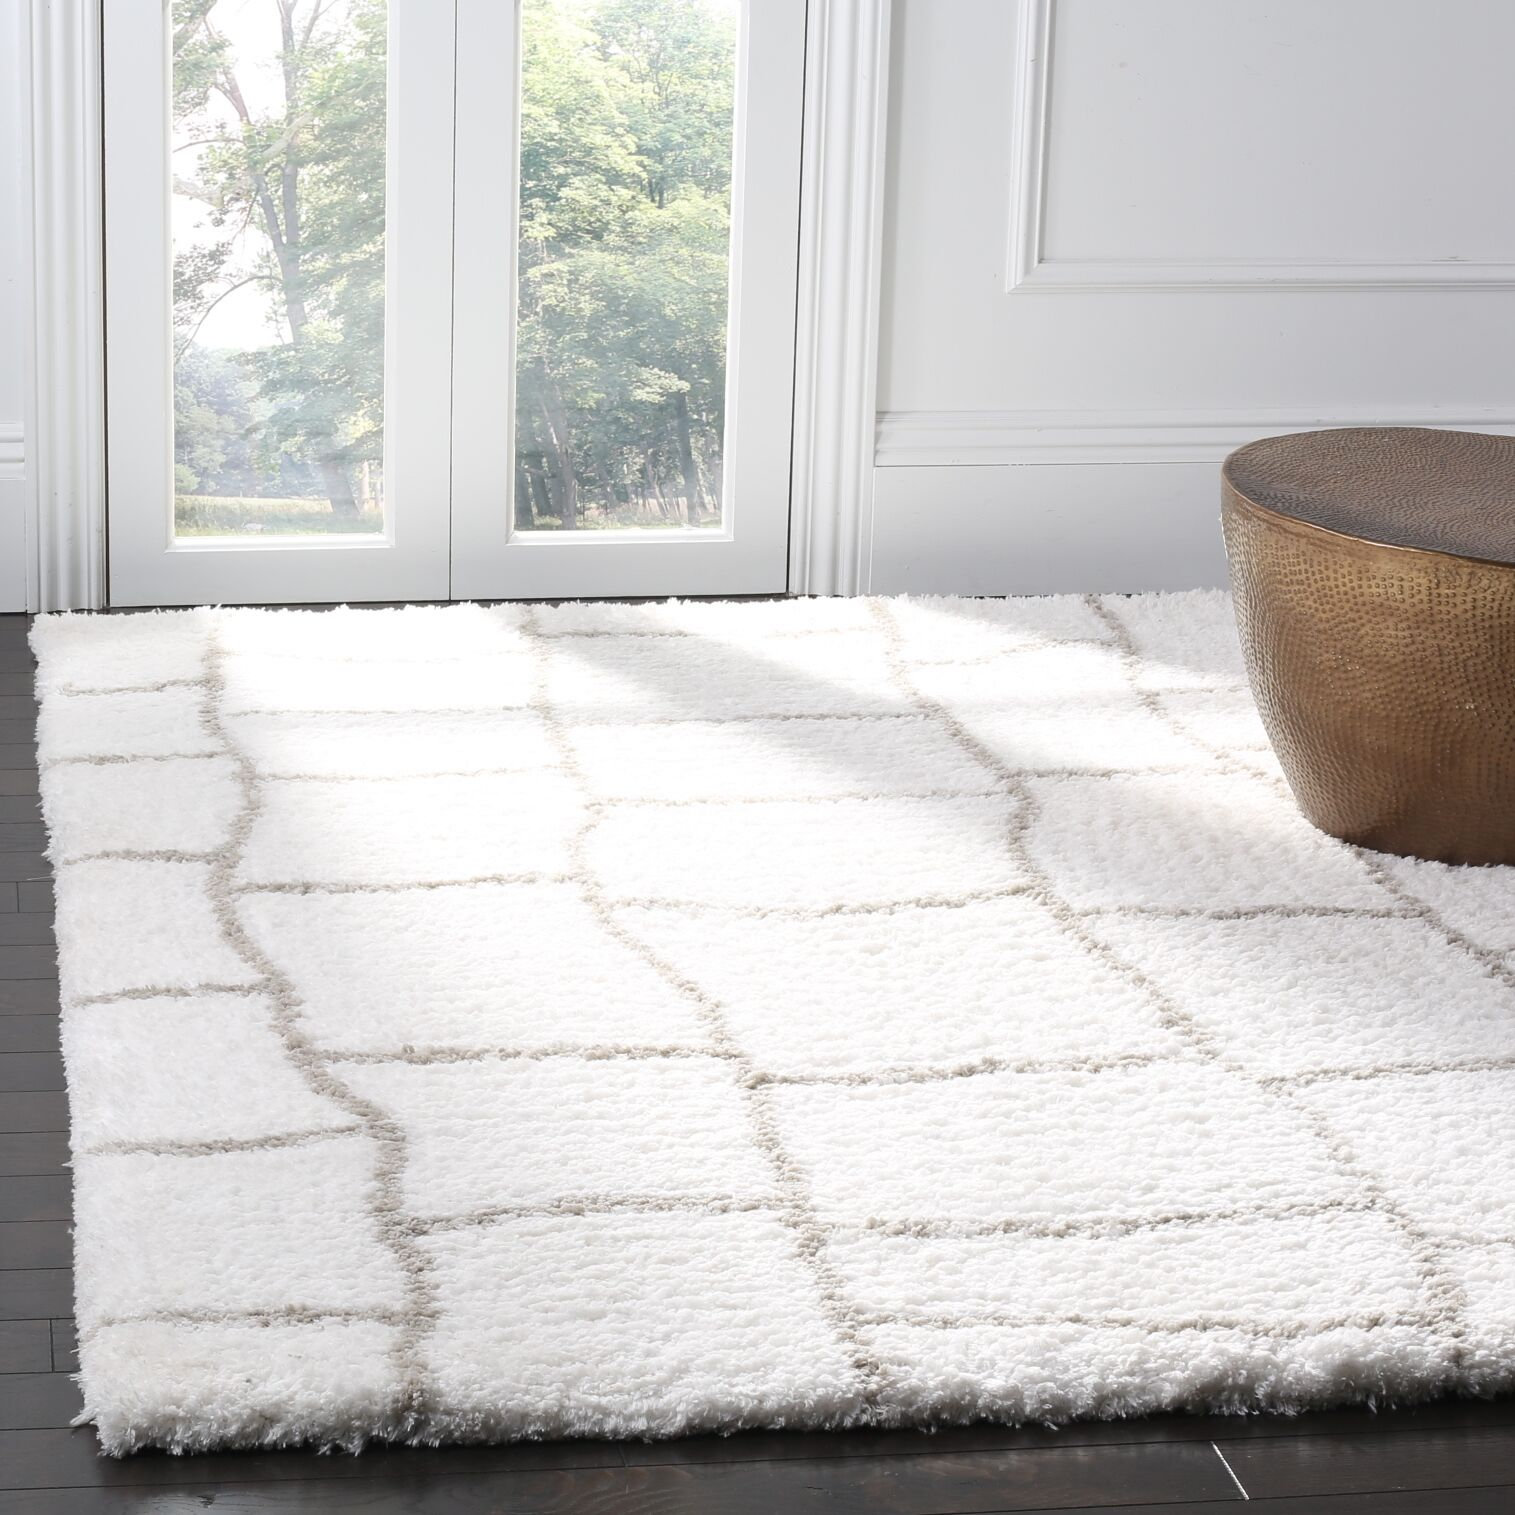 Shead Hand-Tufted Ivory/Silver Area Rug Rug Size: Rectangle 3' x 5'